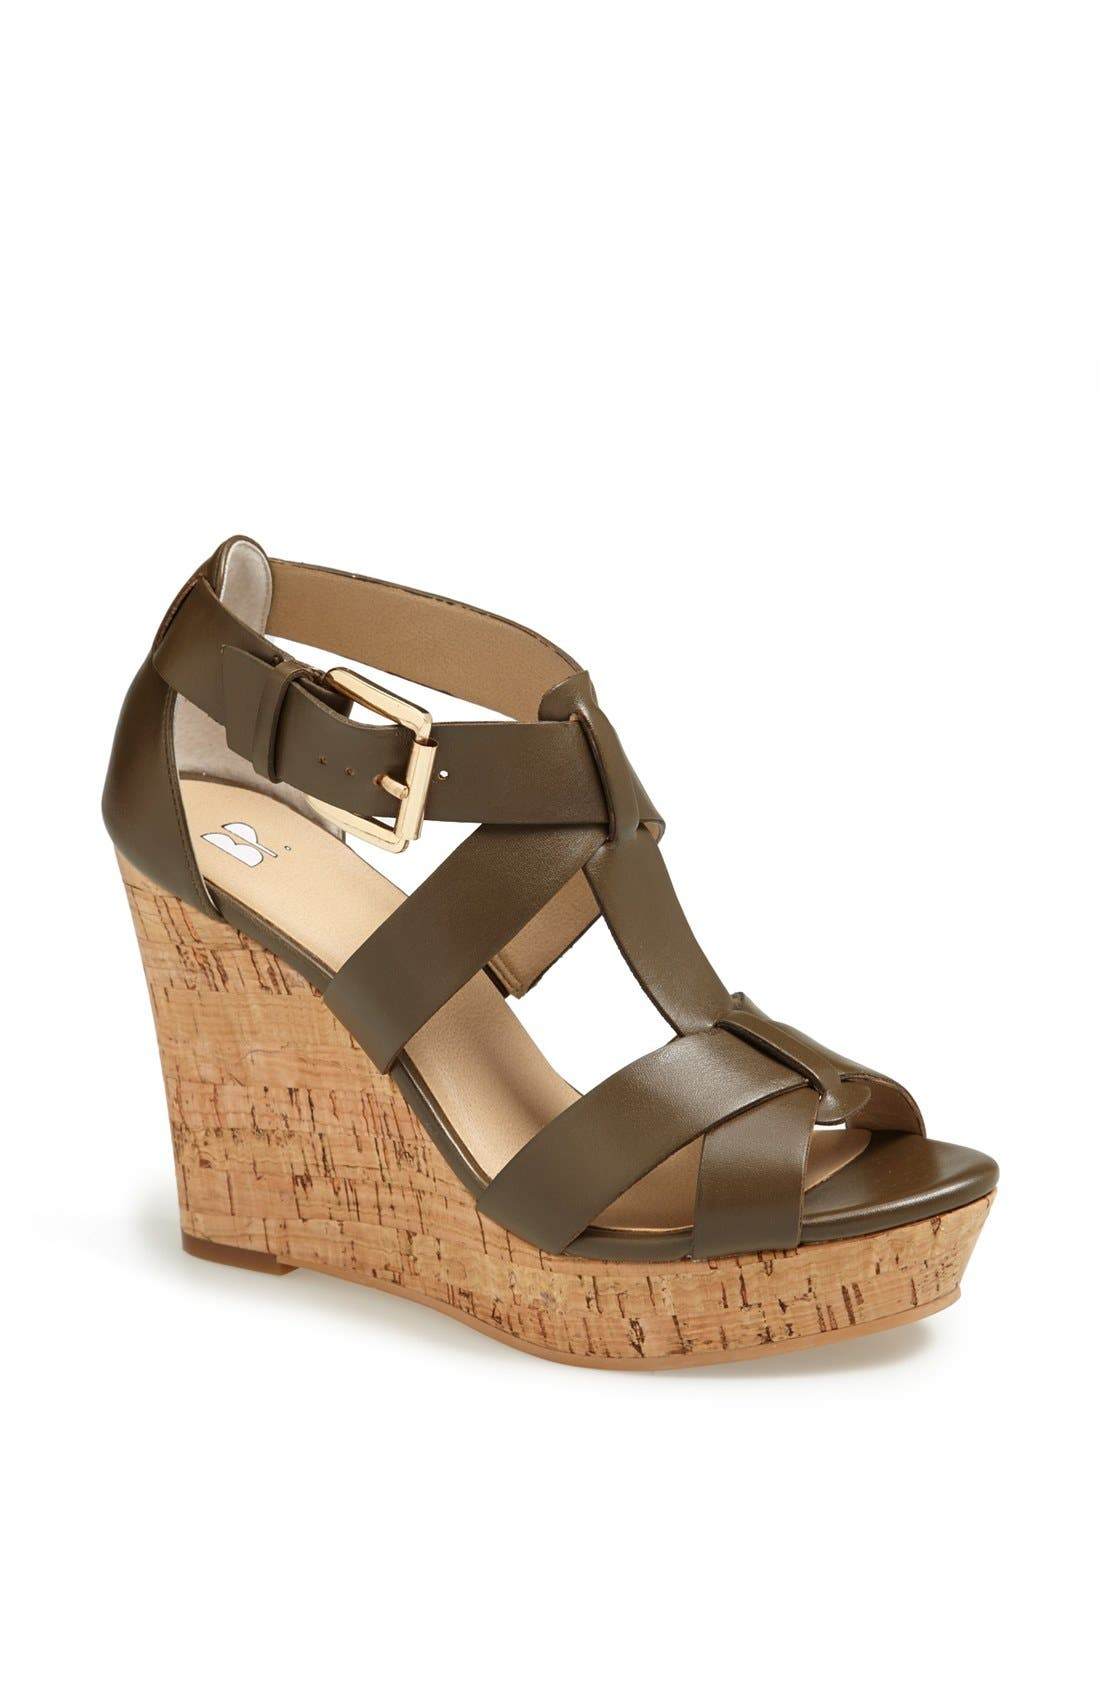 Alternate Image 1 Selected - BP. 'Daleray' Wedge Sandal